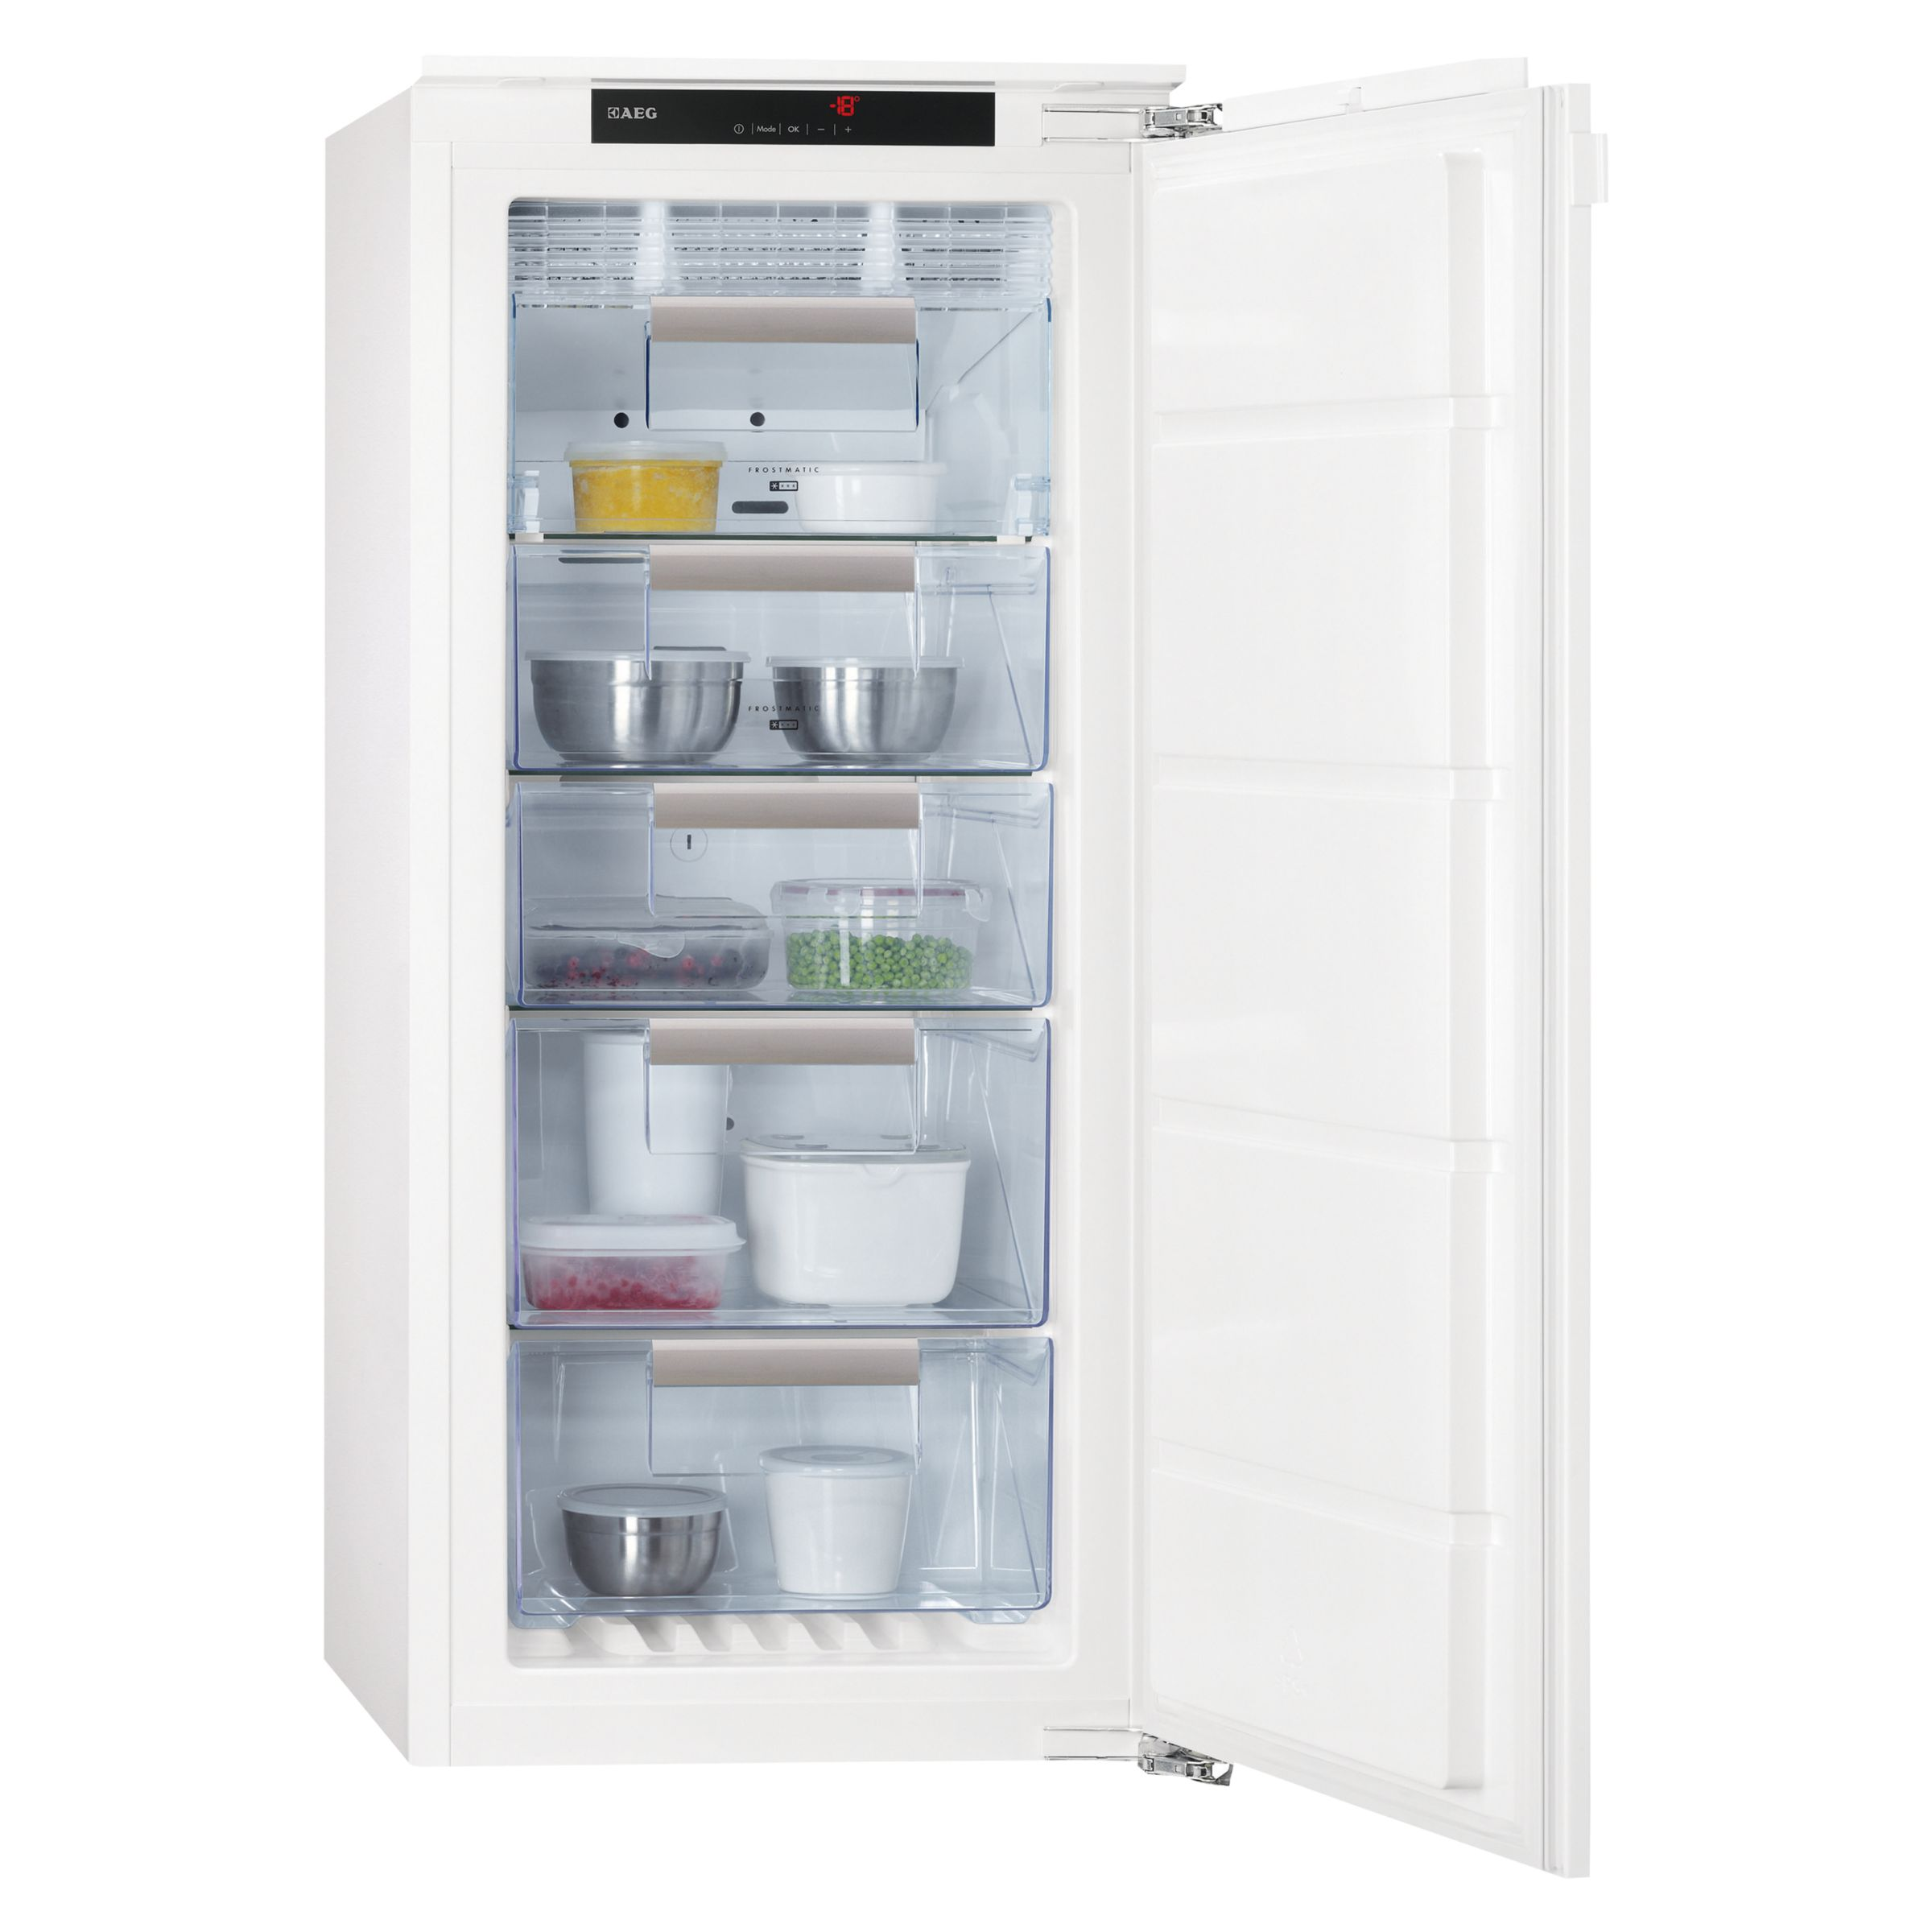 AEG AGN71200C1 Integrated Freezer, A+ Energy Rating, 56cm Wide at ...